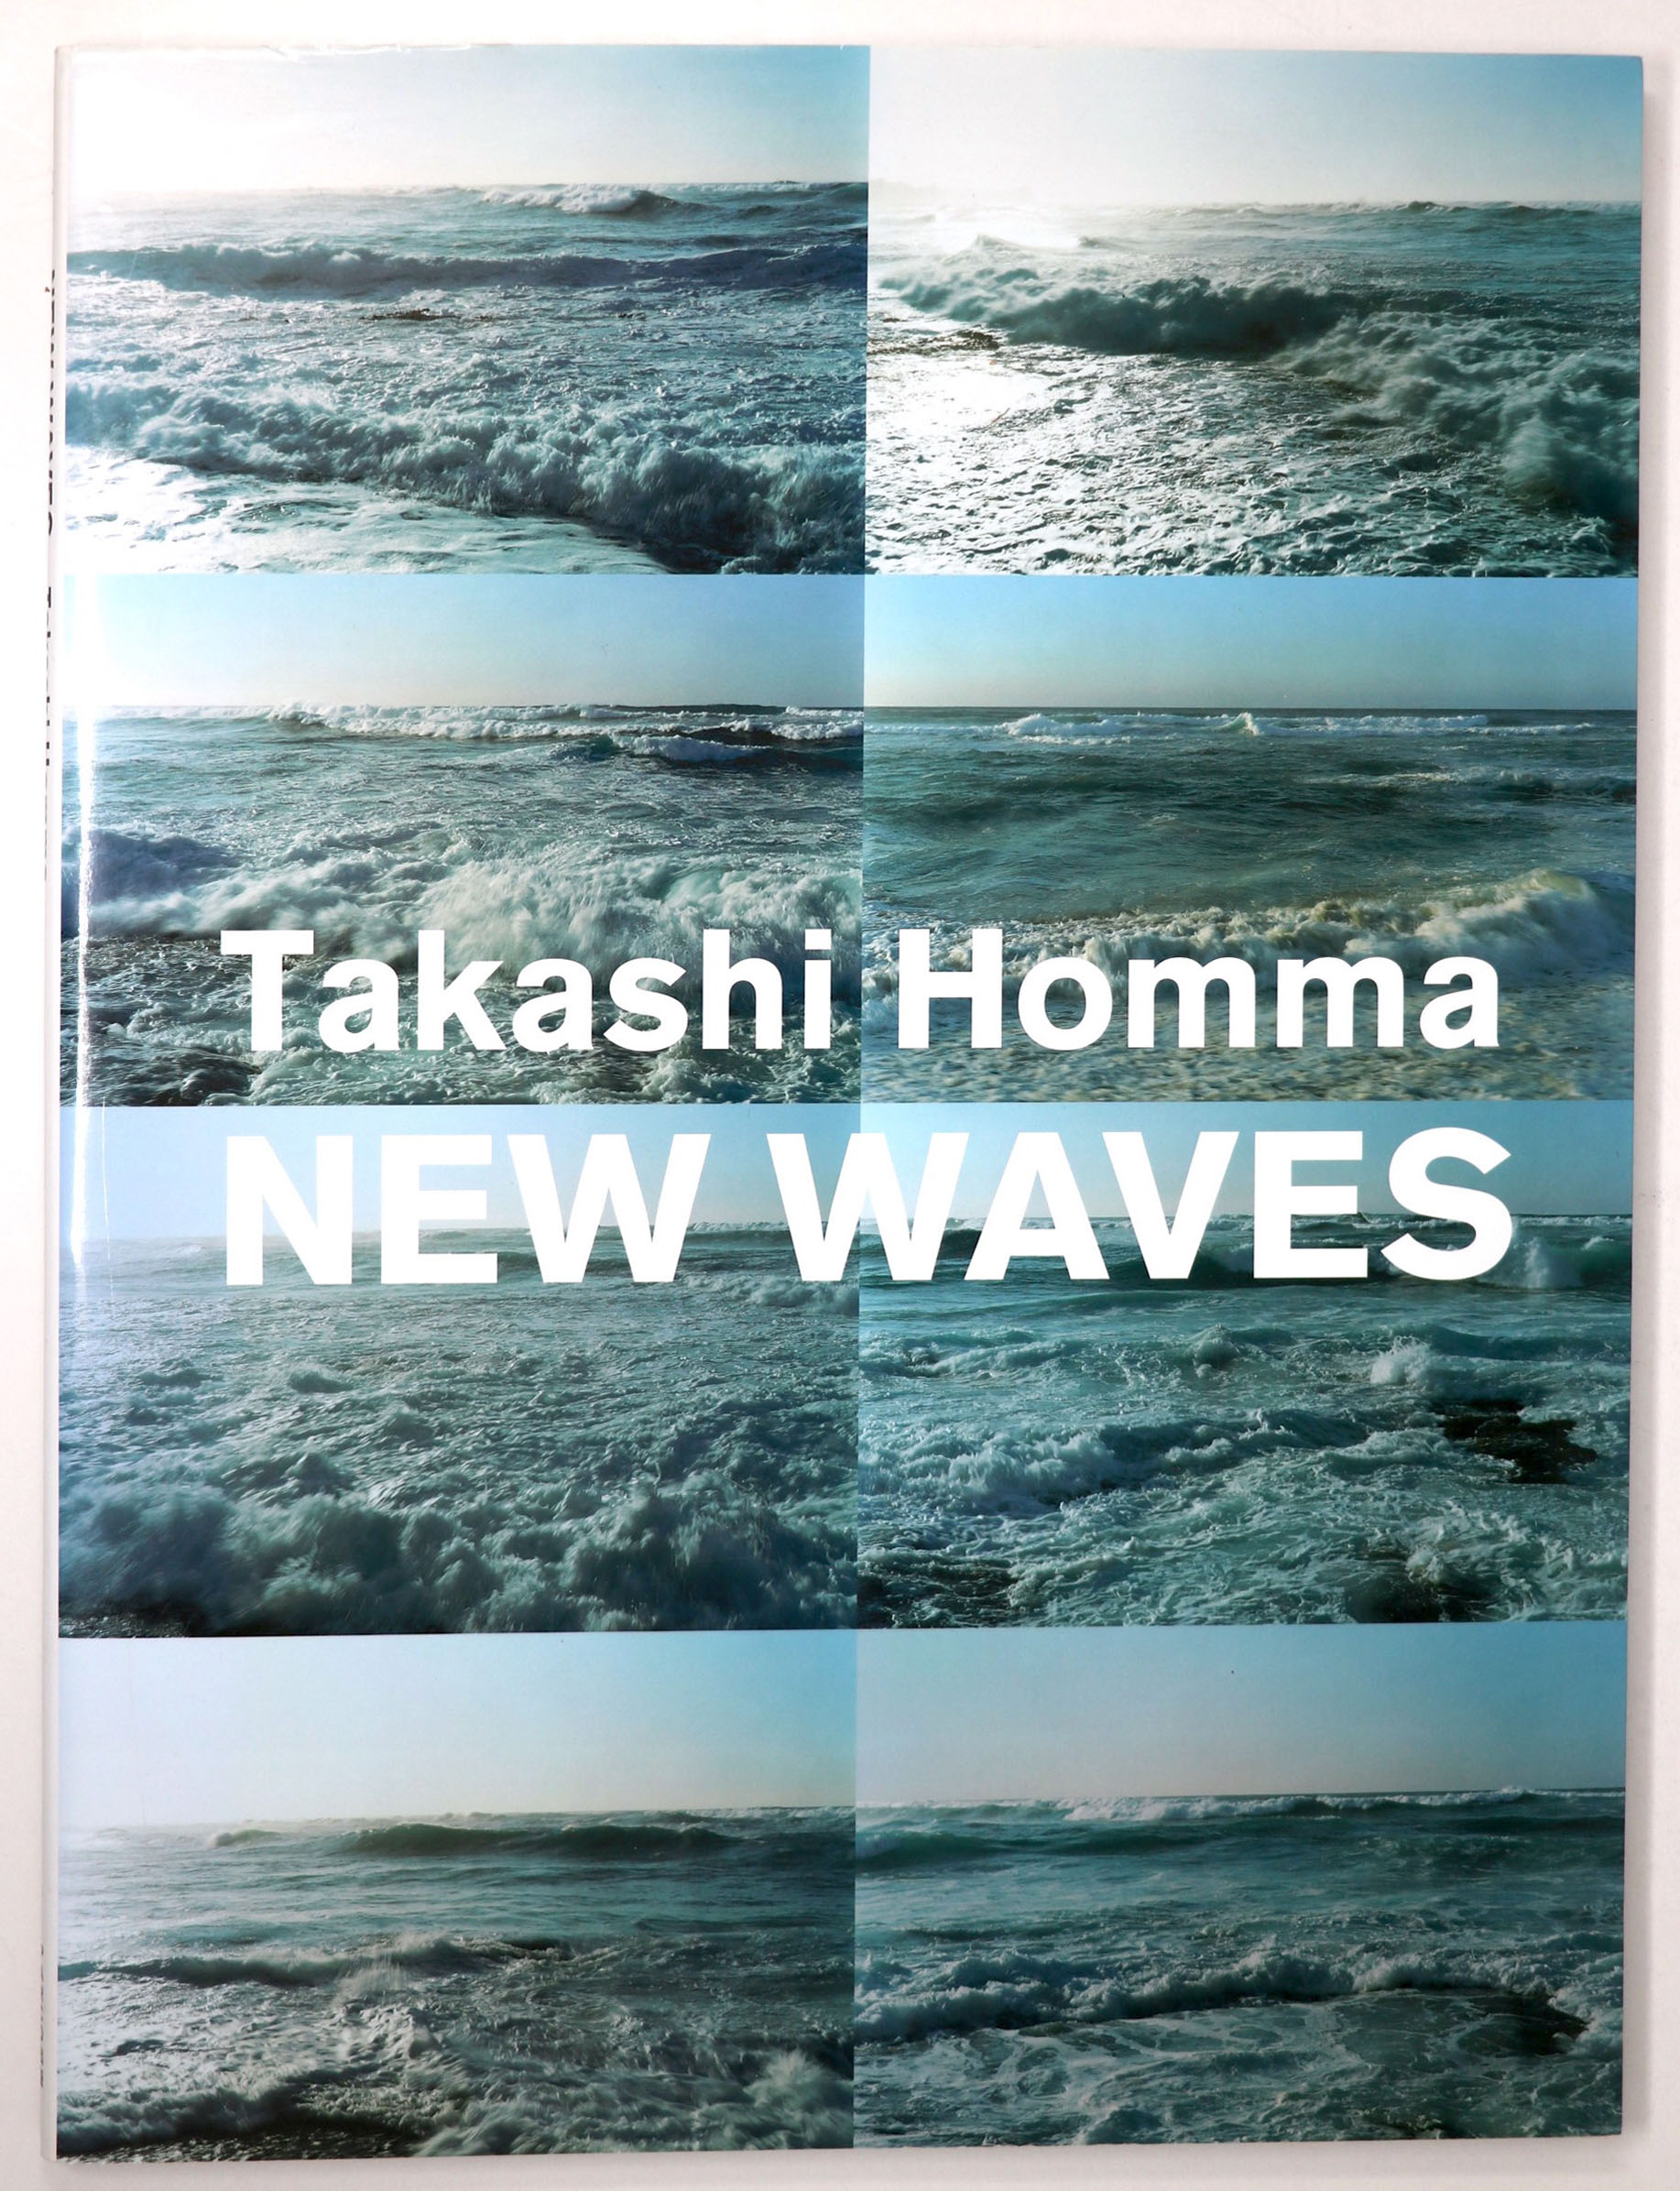 NEW WAVES